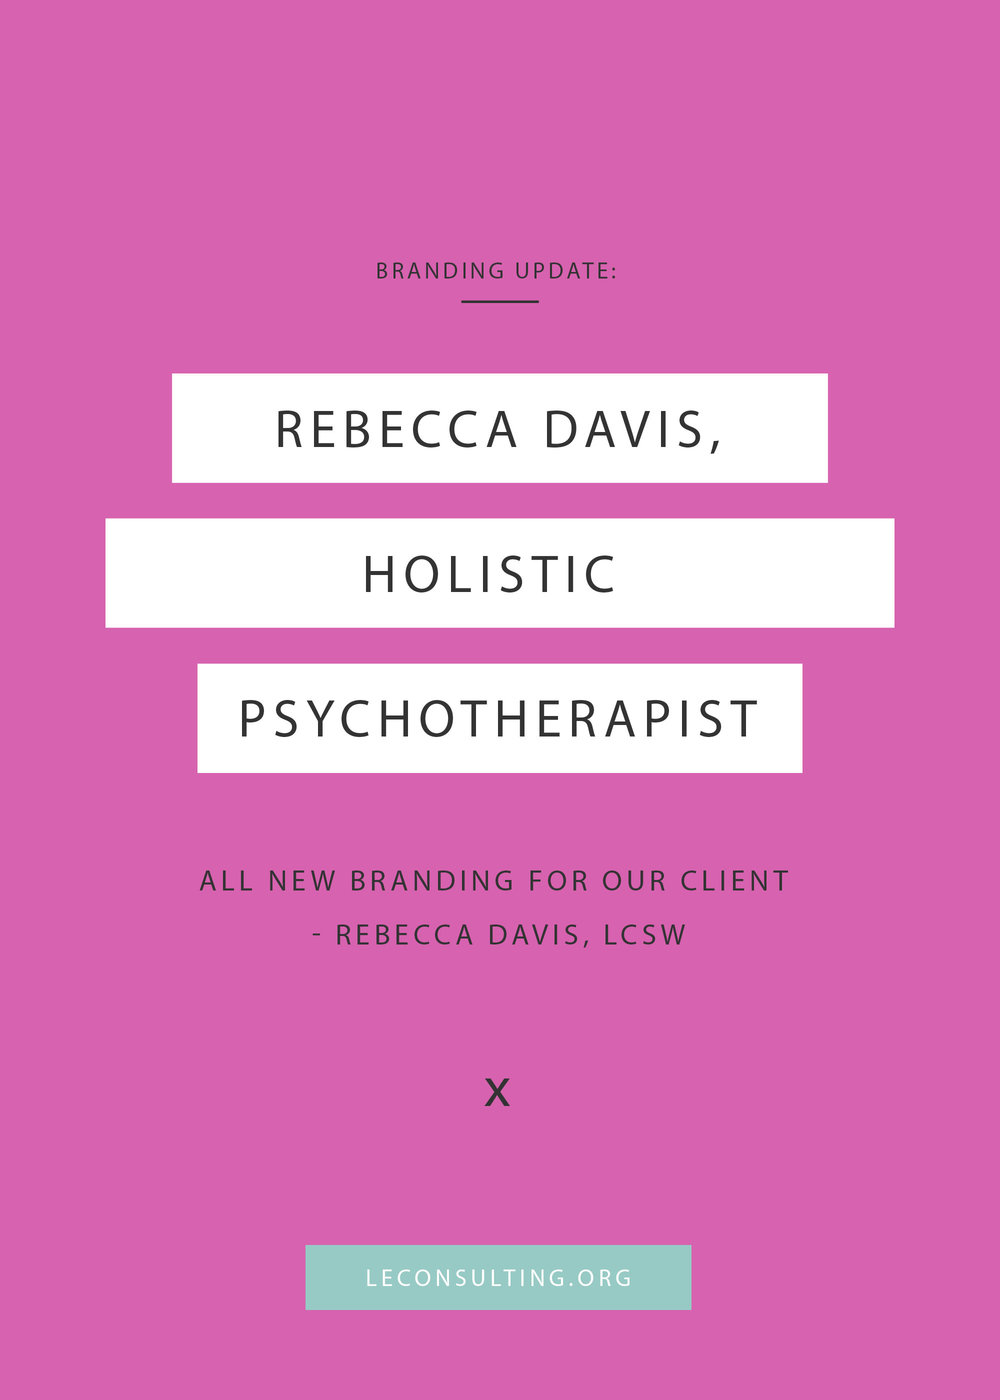 Rebecca Davis, a holistic psychotherapist, turned to Le Consulting for branding assistance. Click through to see the outcome of Rebecca's branding update. If you need marketing assistance for your creative business, contact Le Consulting at leconsulting.org. | LE Consulting